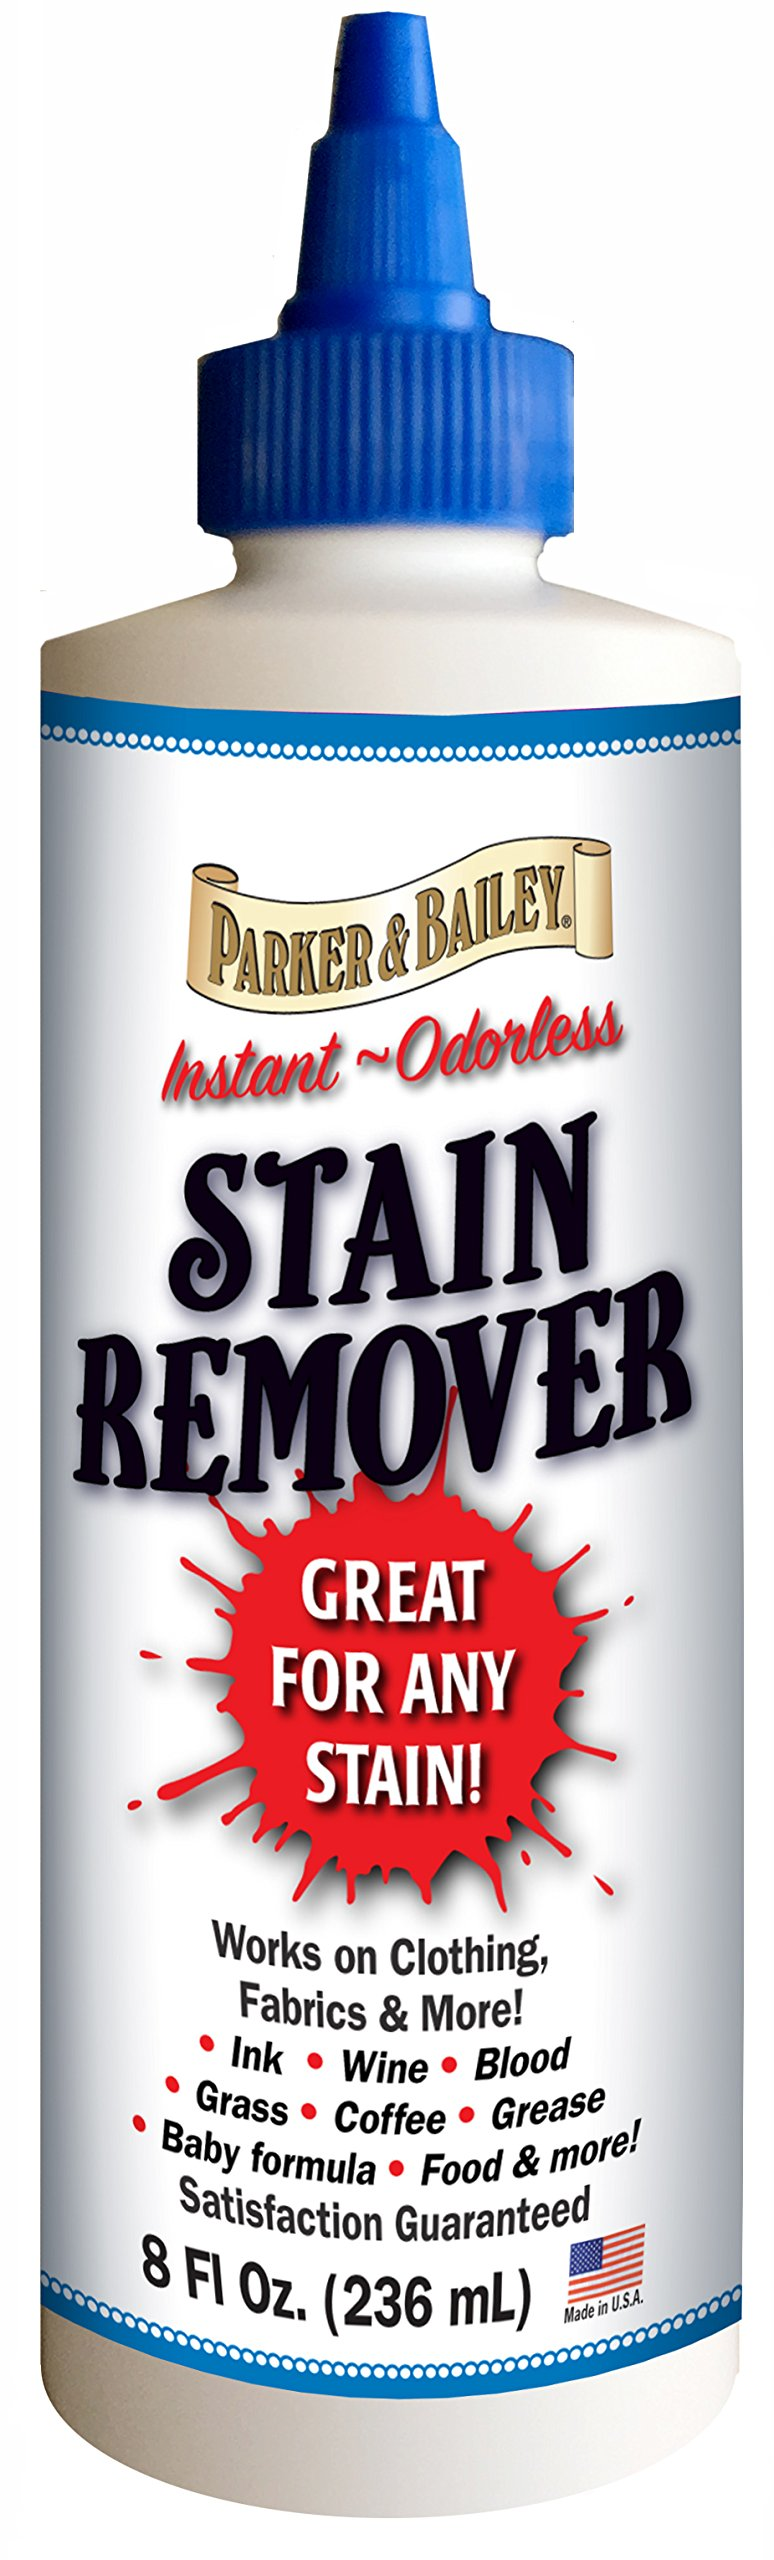 Parker Bailey cleaning product 525282 Parker & Bailey Stain Remover - 8 Oz